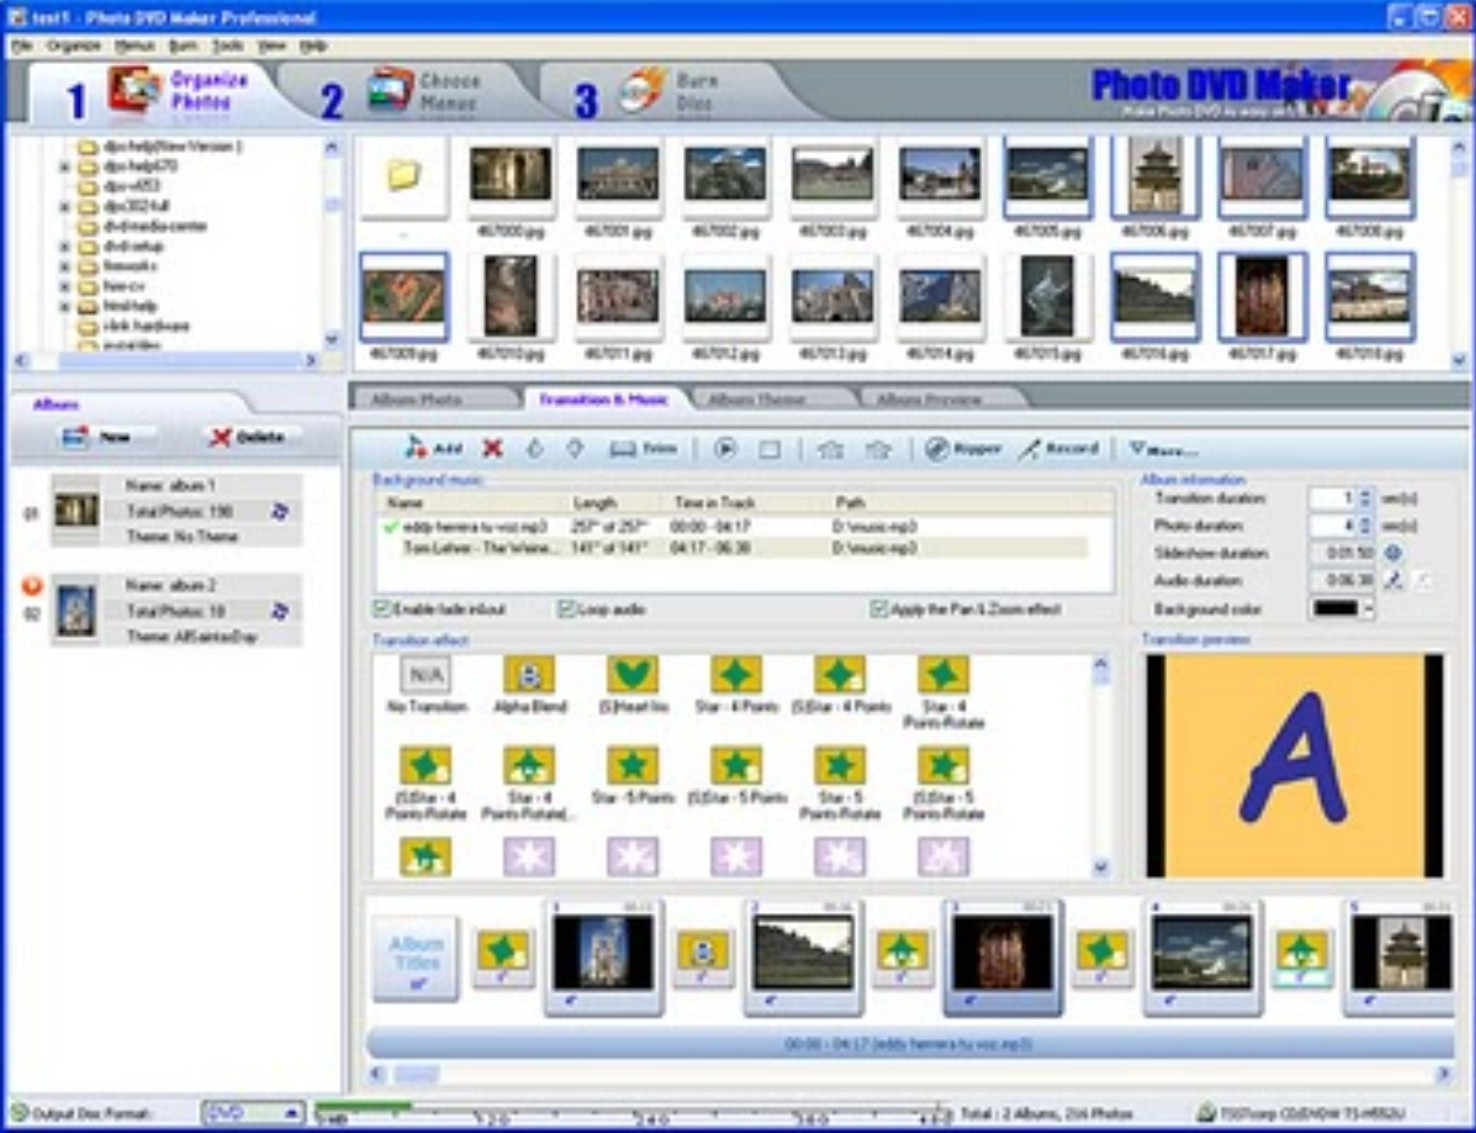 DVD Photo Slideshow - Official Site Dvd photo show software